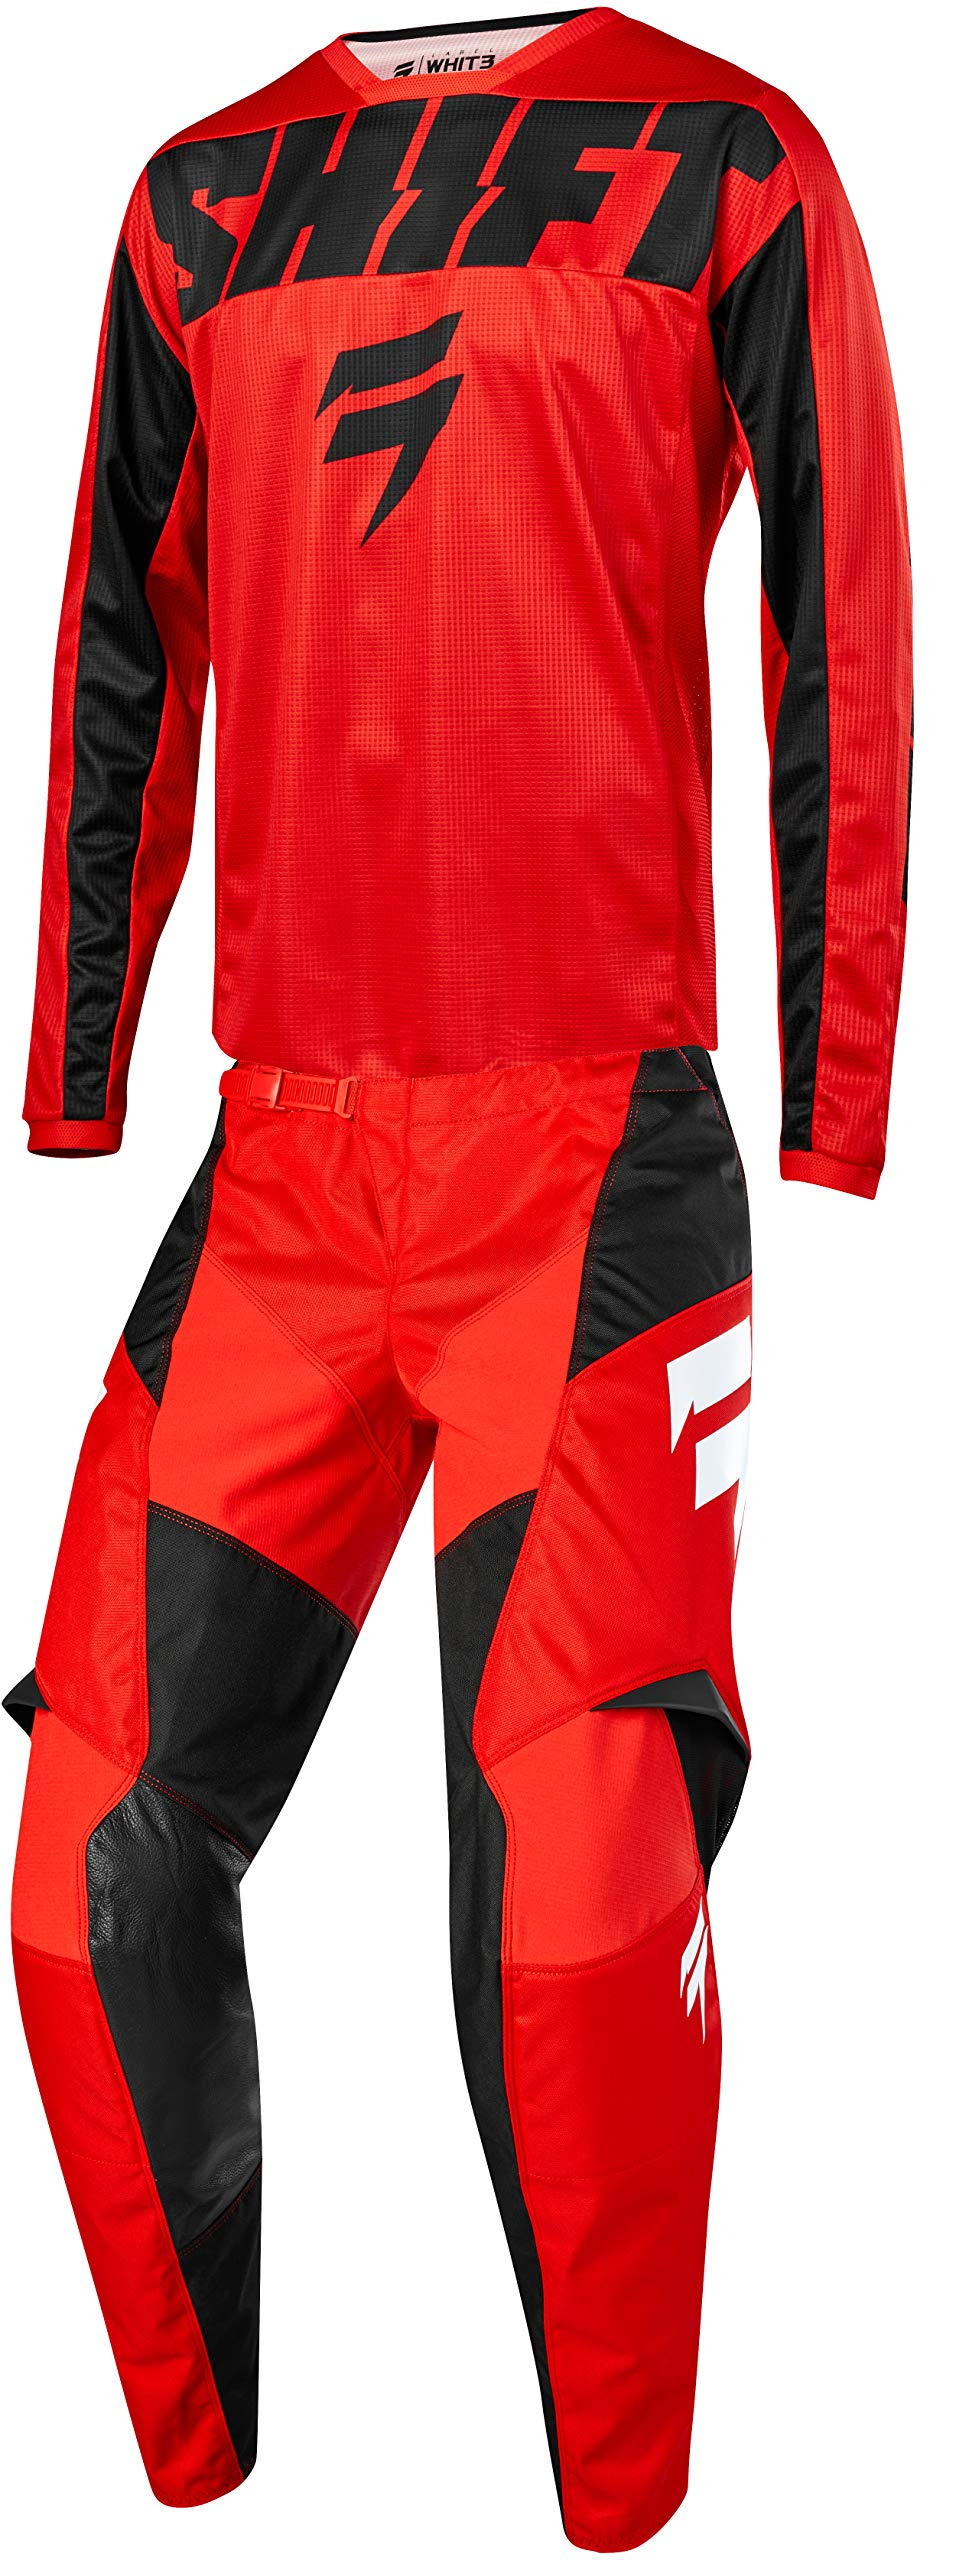 Shift MX 2019 White Label York Motocross Off-Road Dirt Bike Riding Gear Combo (Youth Red & Black Jersey Y-Small/Y-24W Pant)